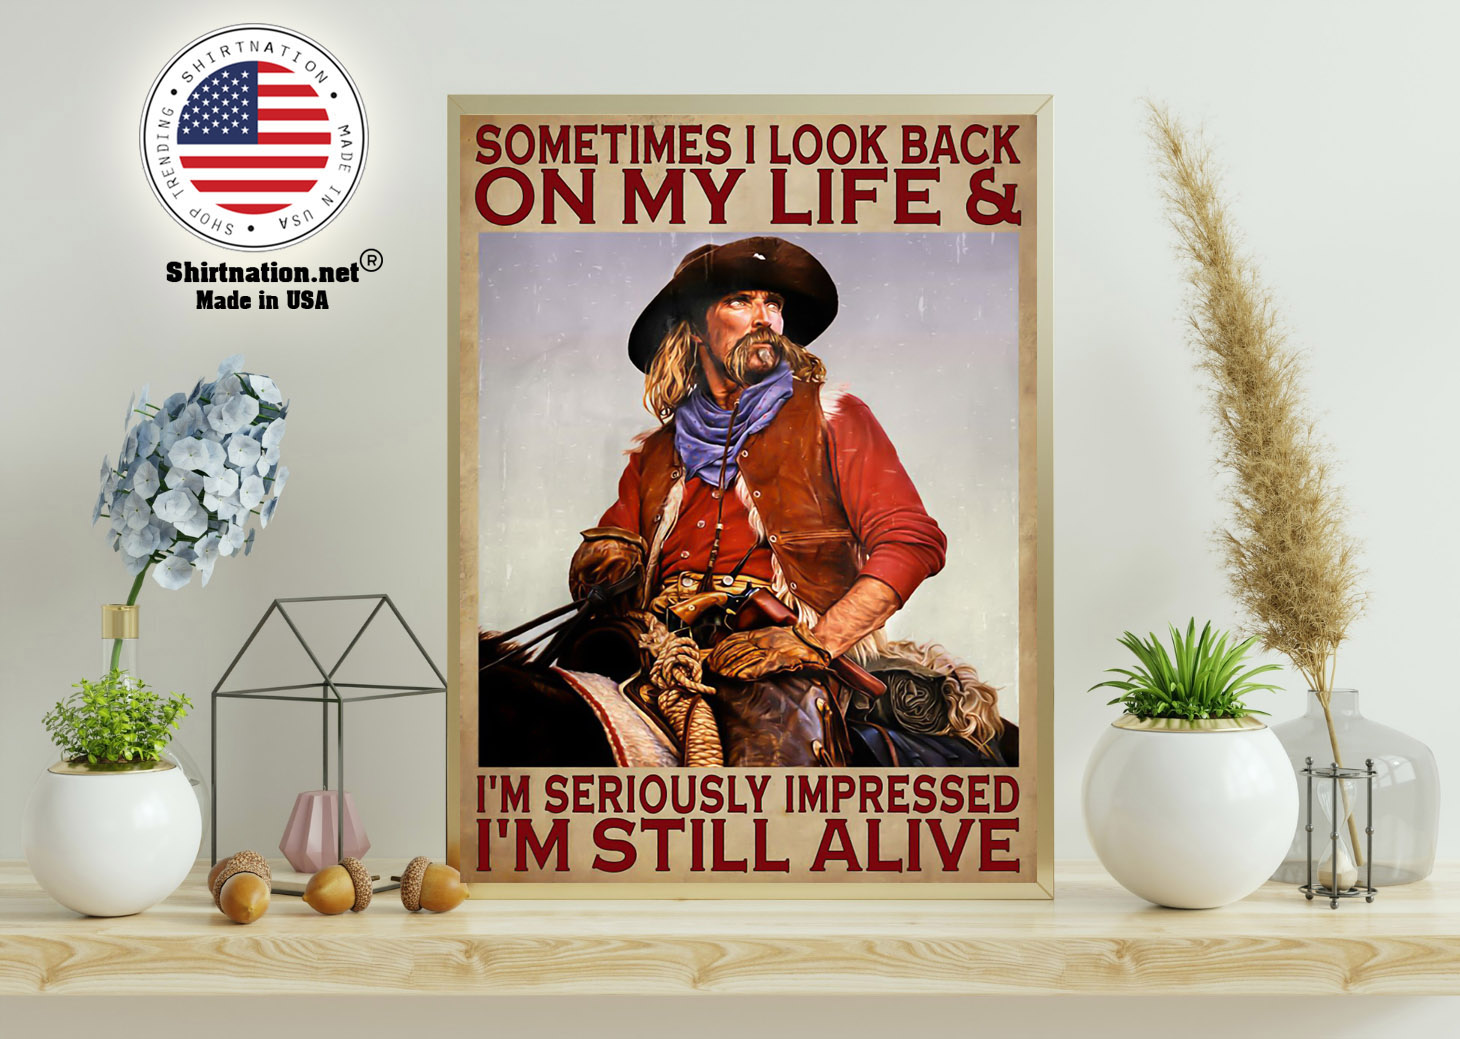 Sometimes I look back on my life and Im seriously impressed Im still alive poster 11